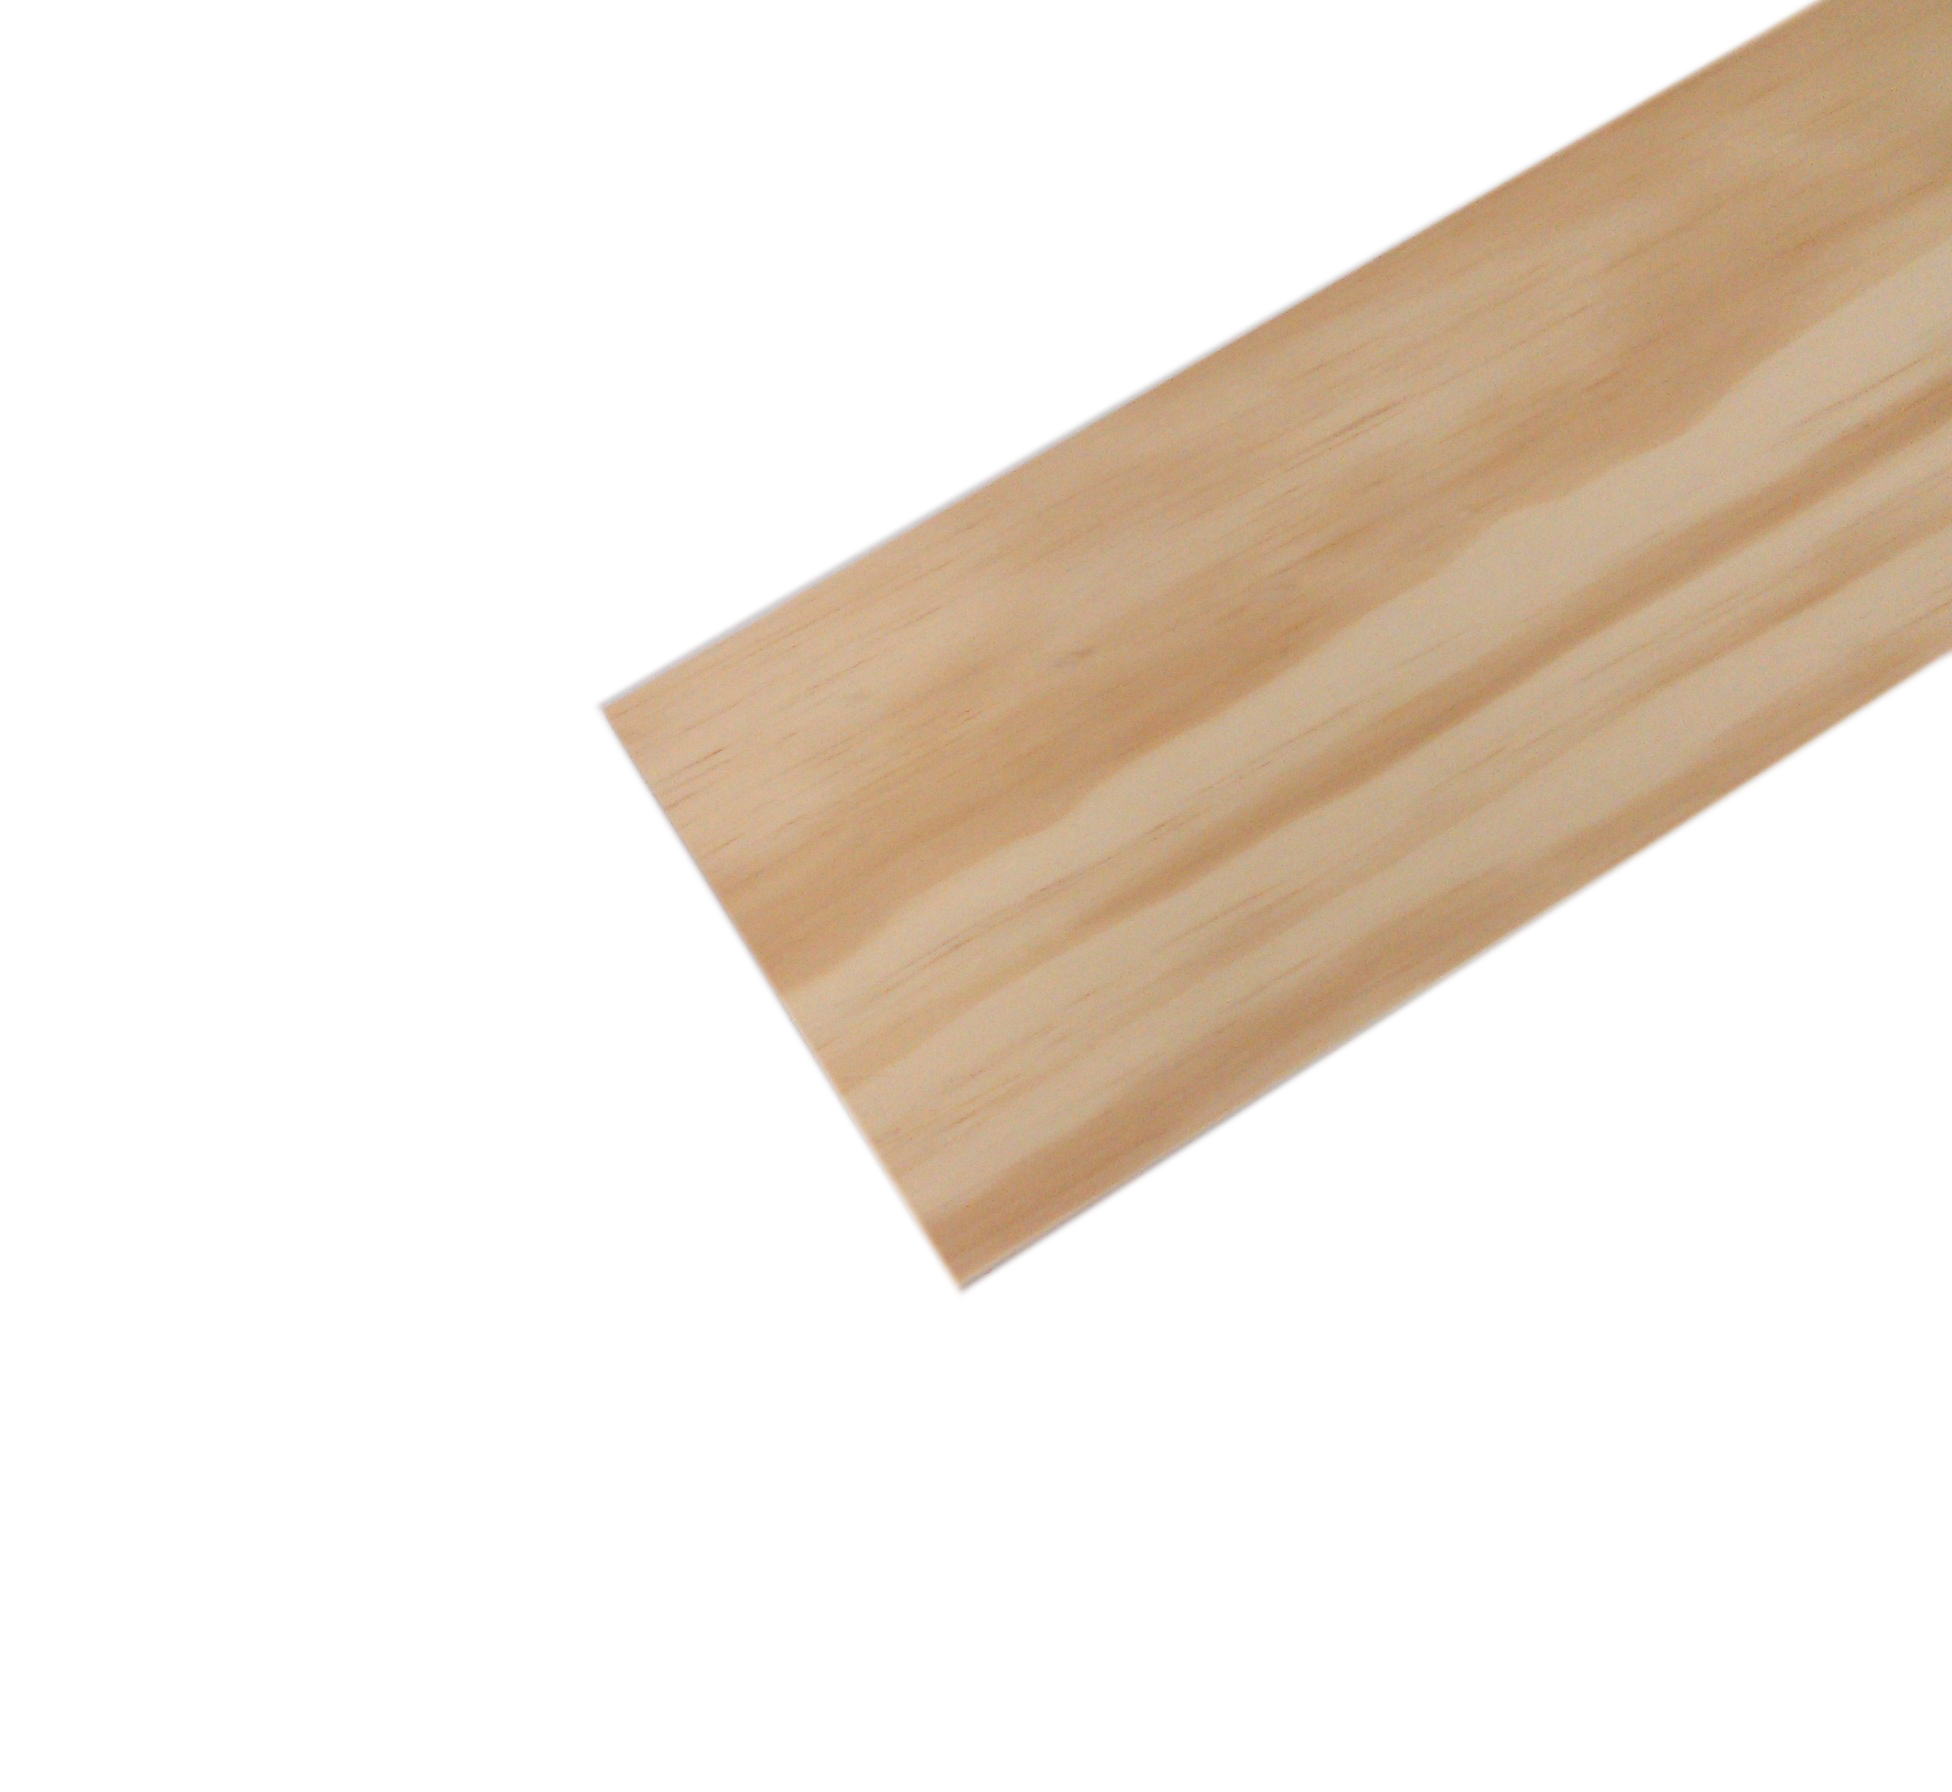 Radiata Pine Wood 500mm long - Ideal for models and general use